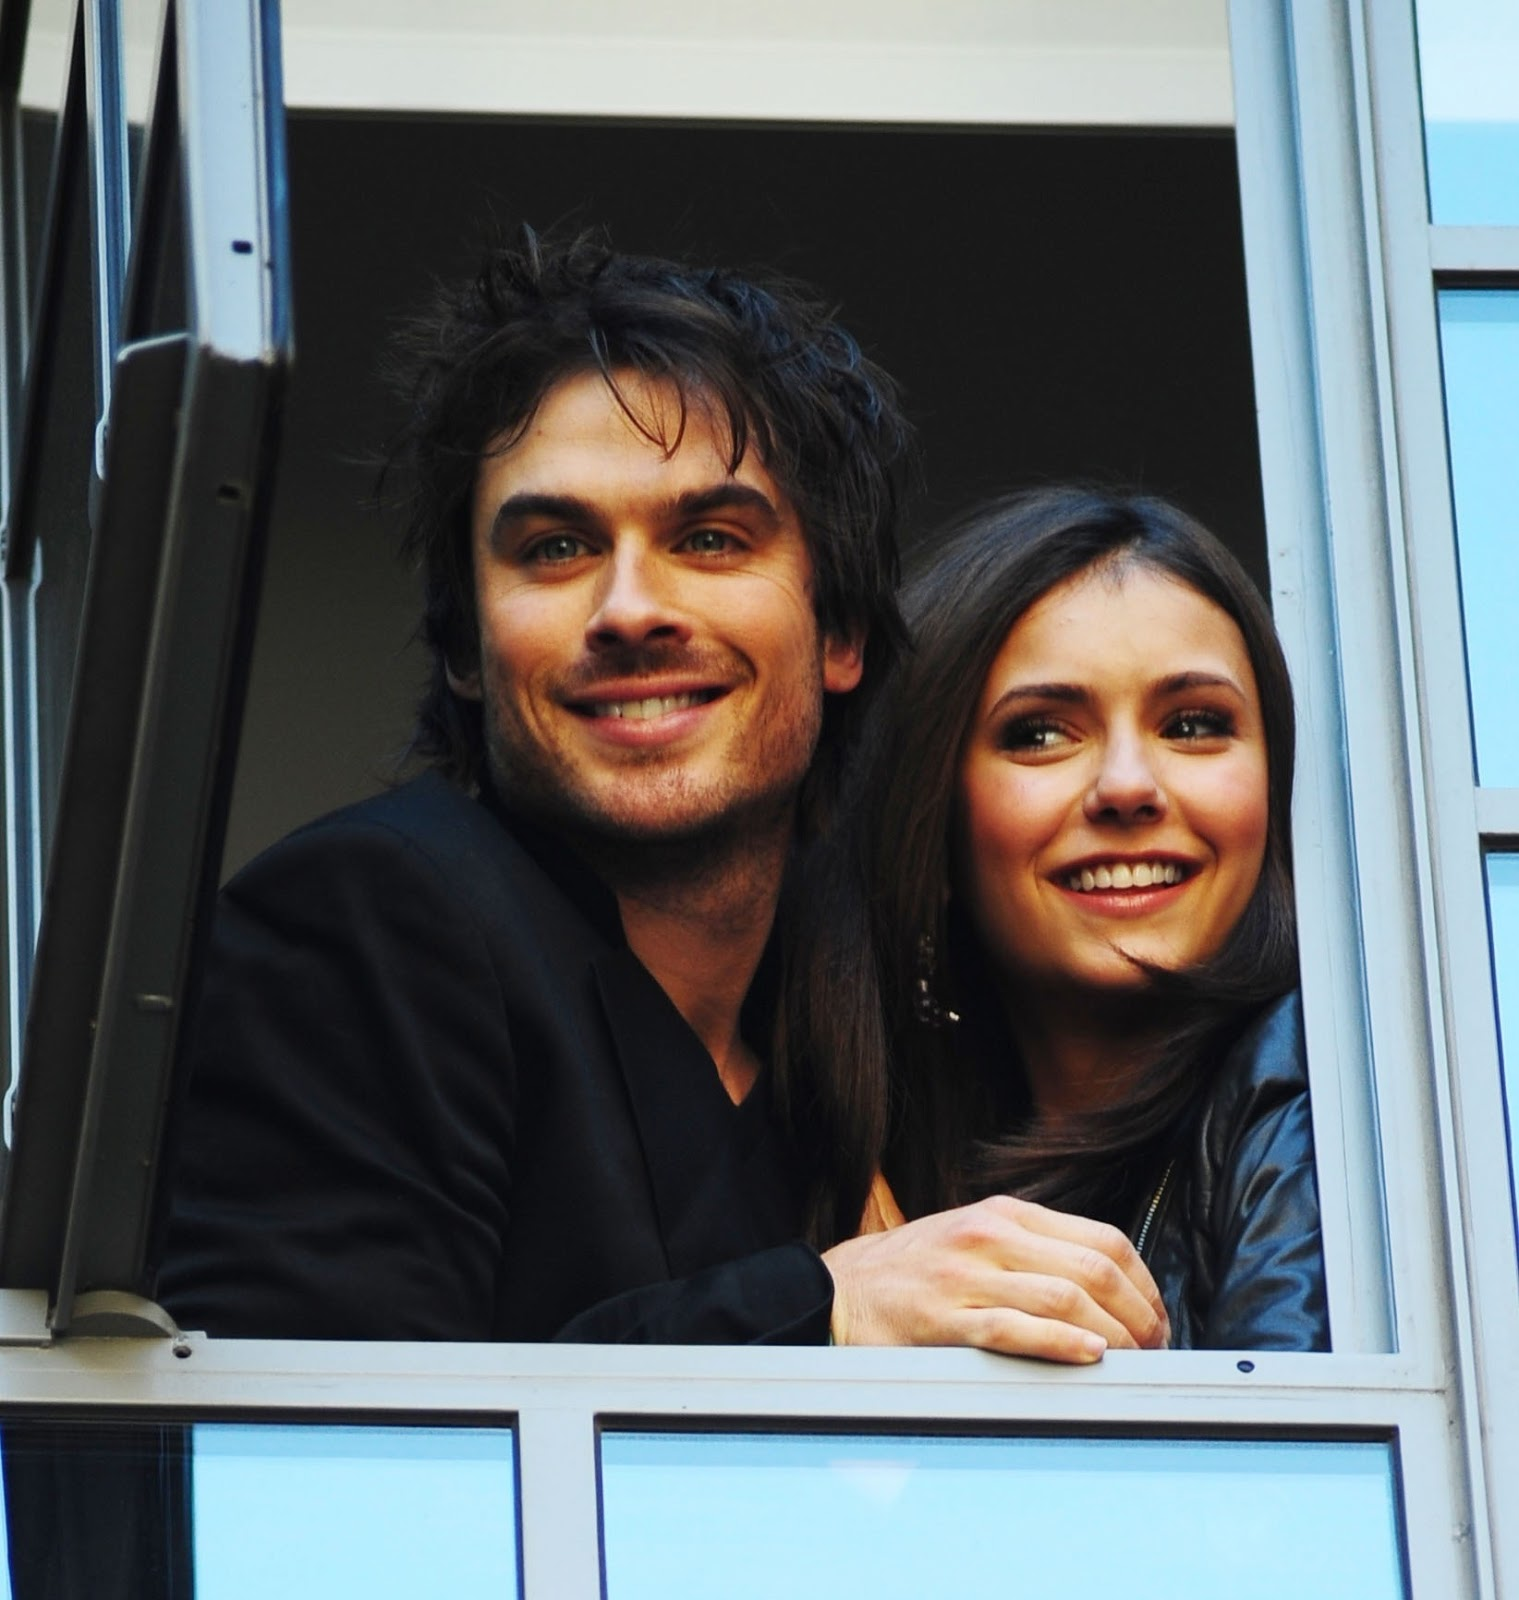 Ian somerhalder and paul wesley pictures of snakes - healthy family clipart of 4